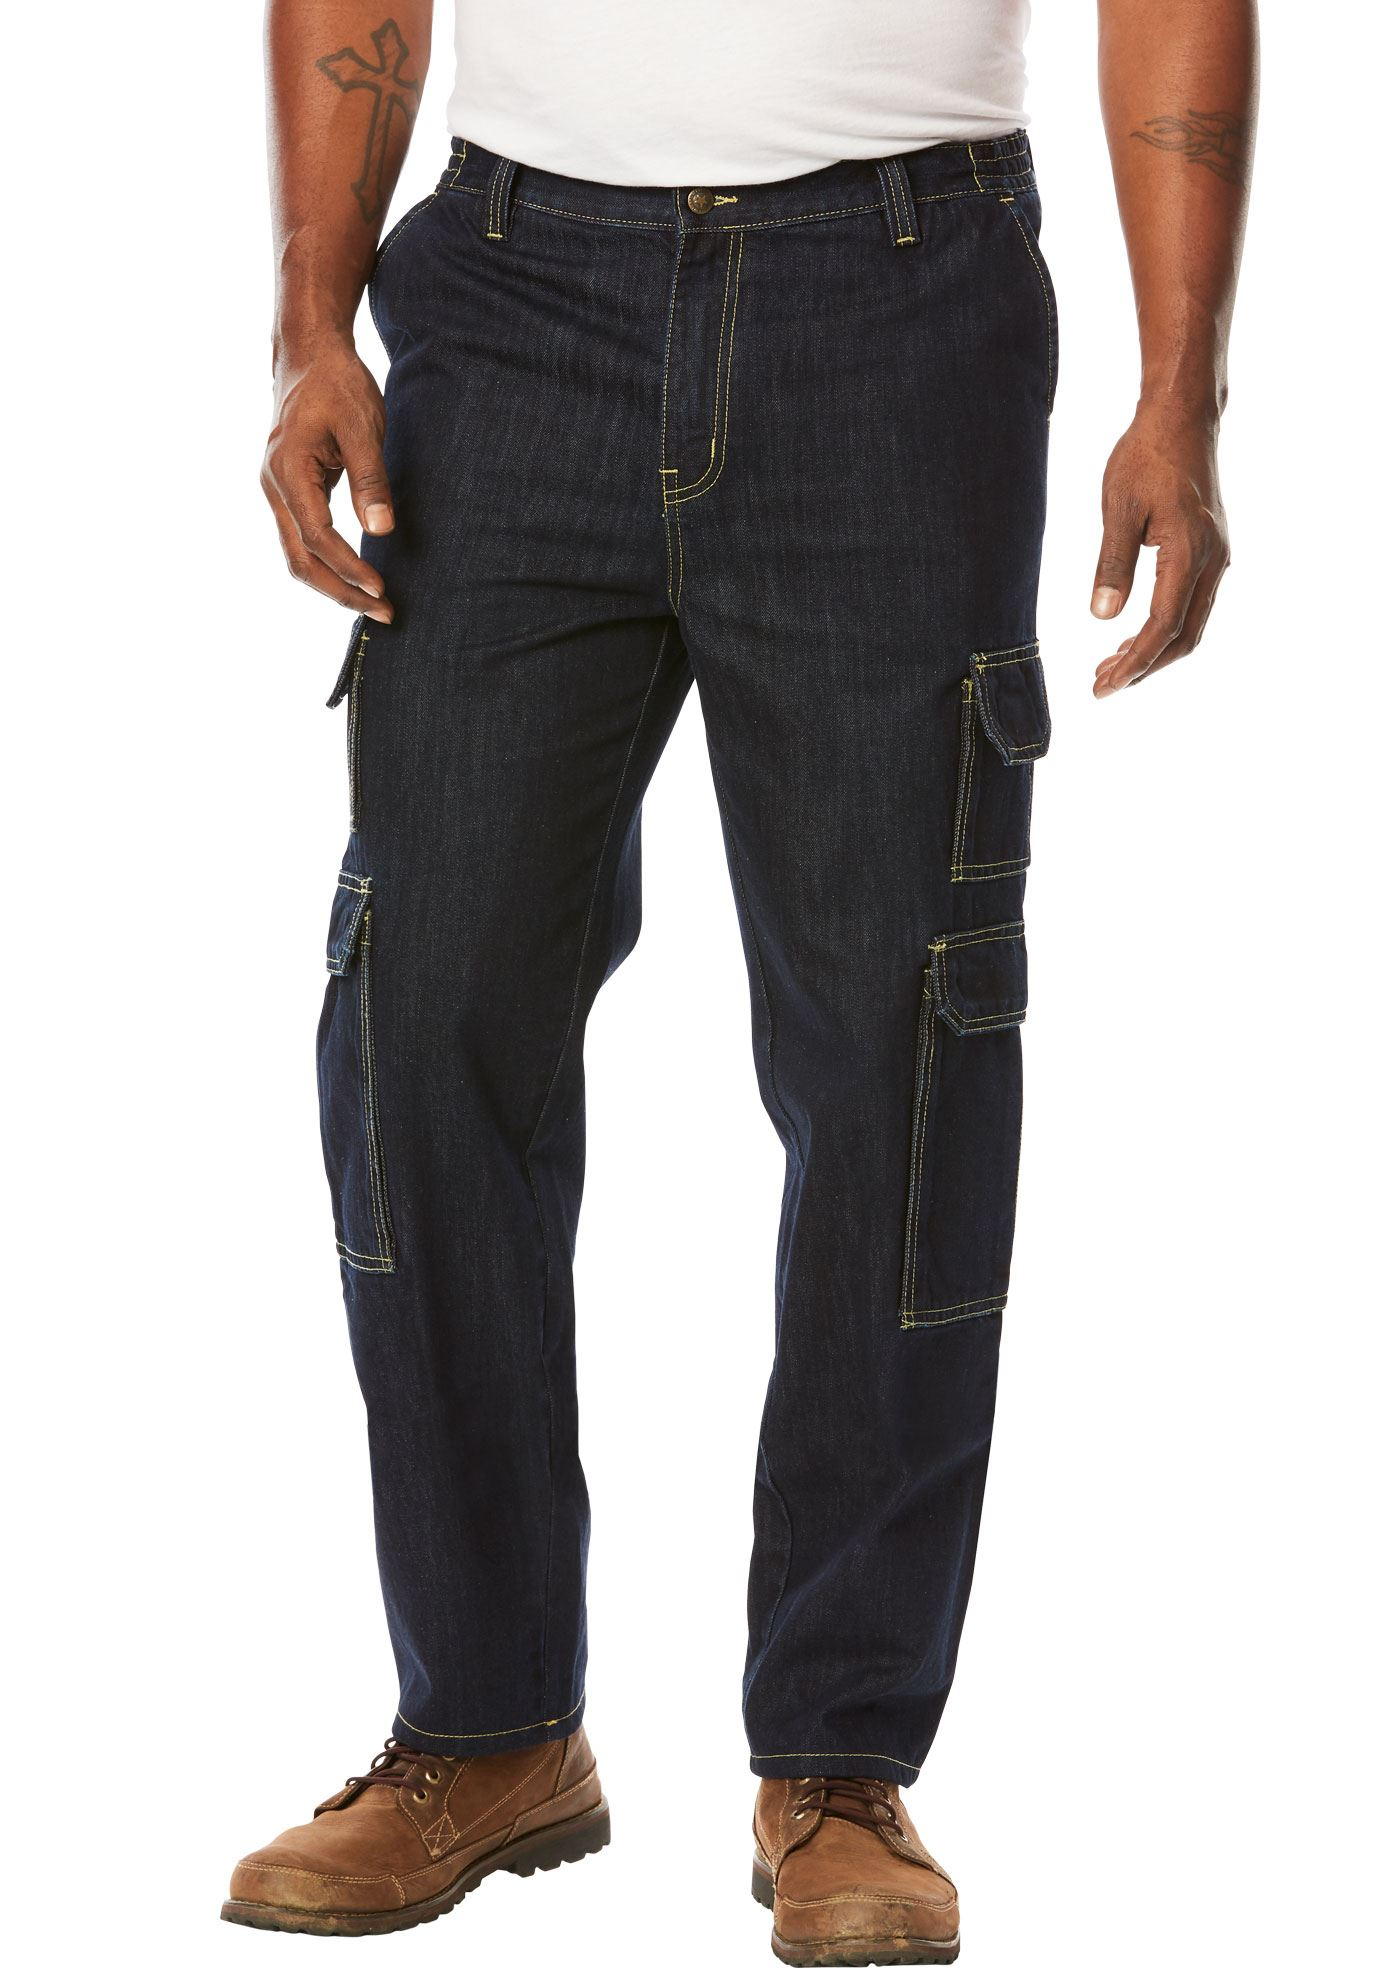 Men's Big & Tall Side-elastic Cargo Pants By Boulder Creek